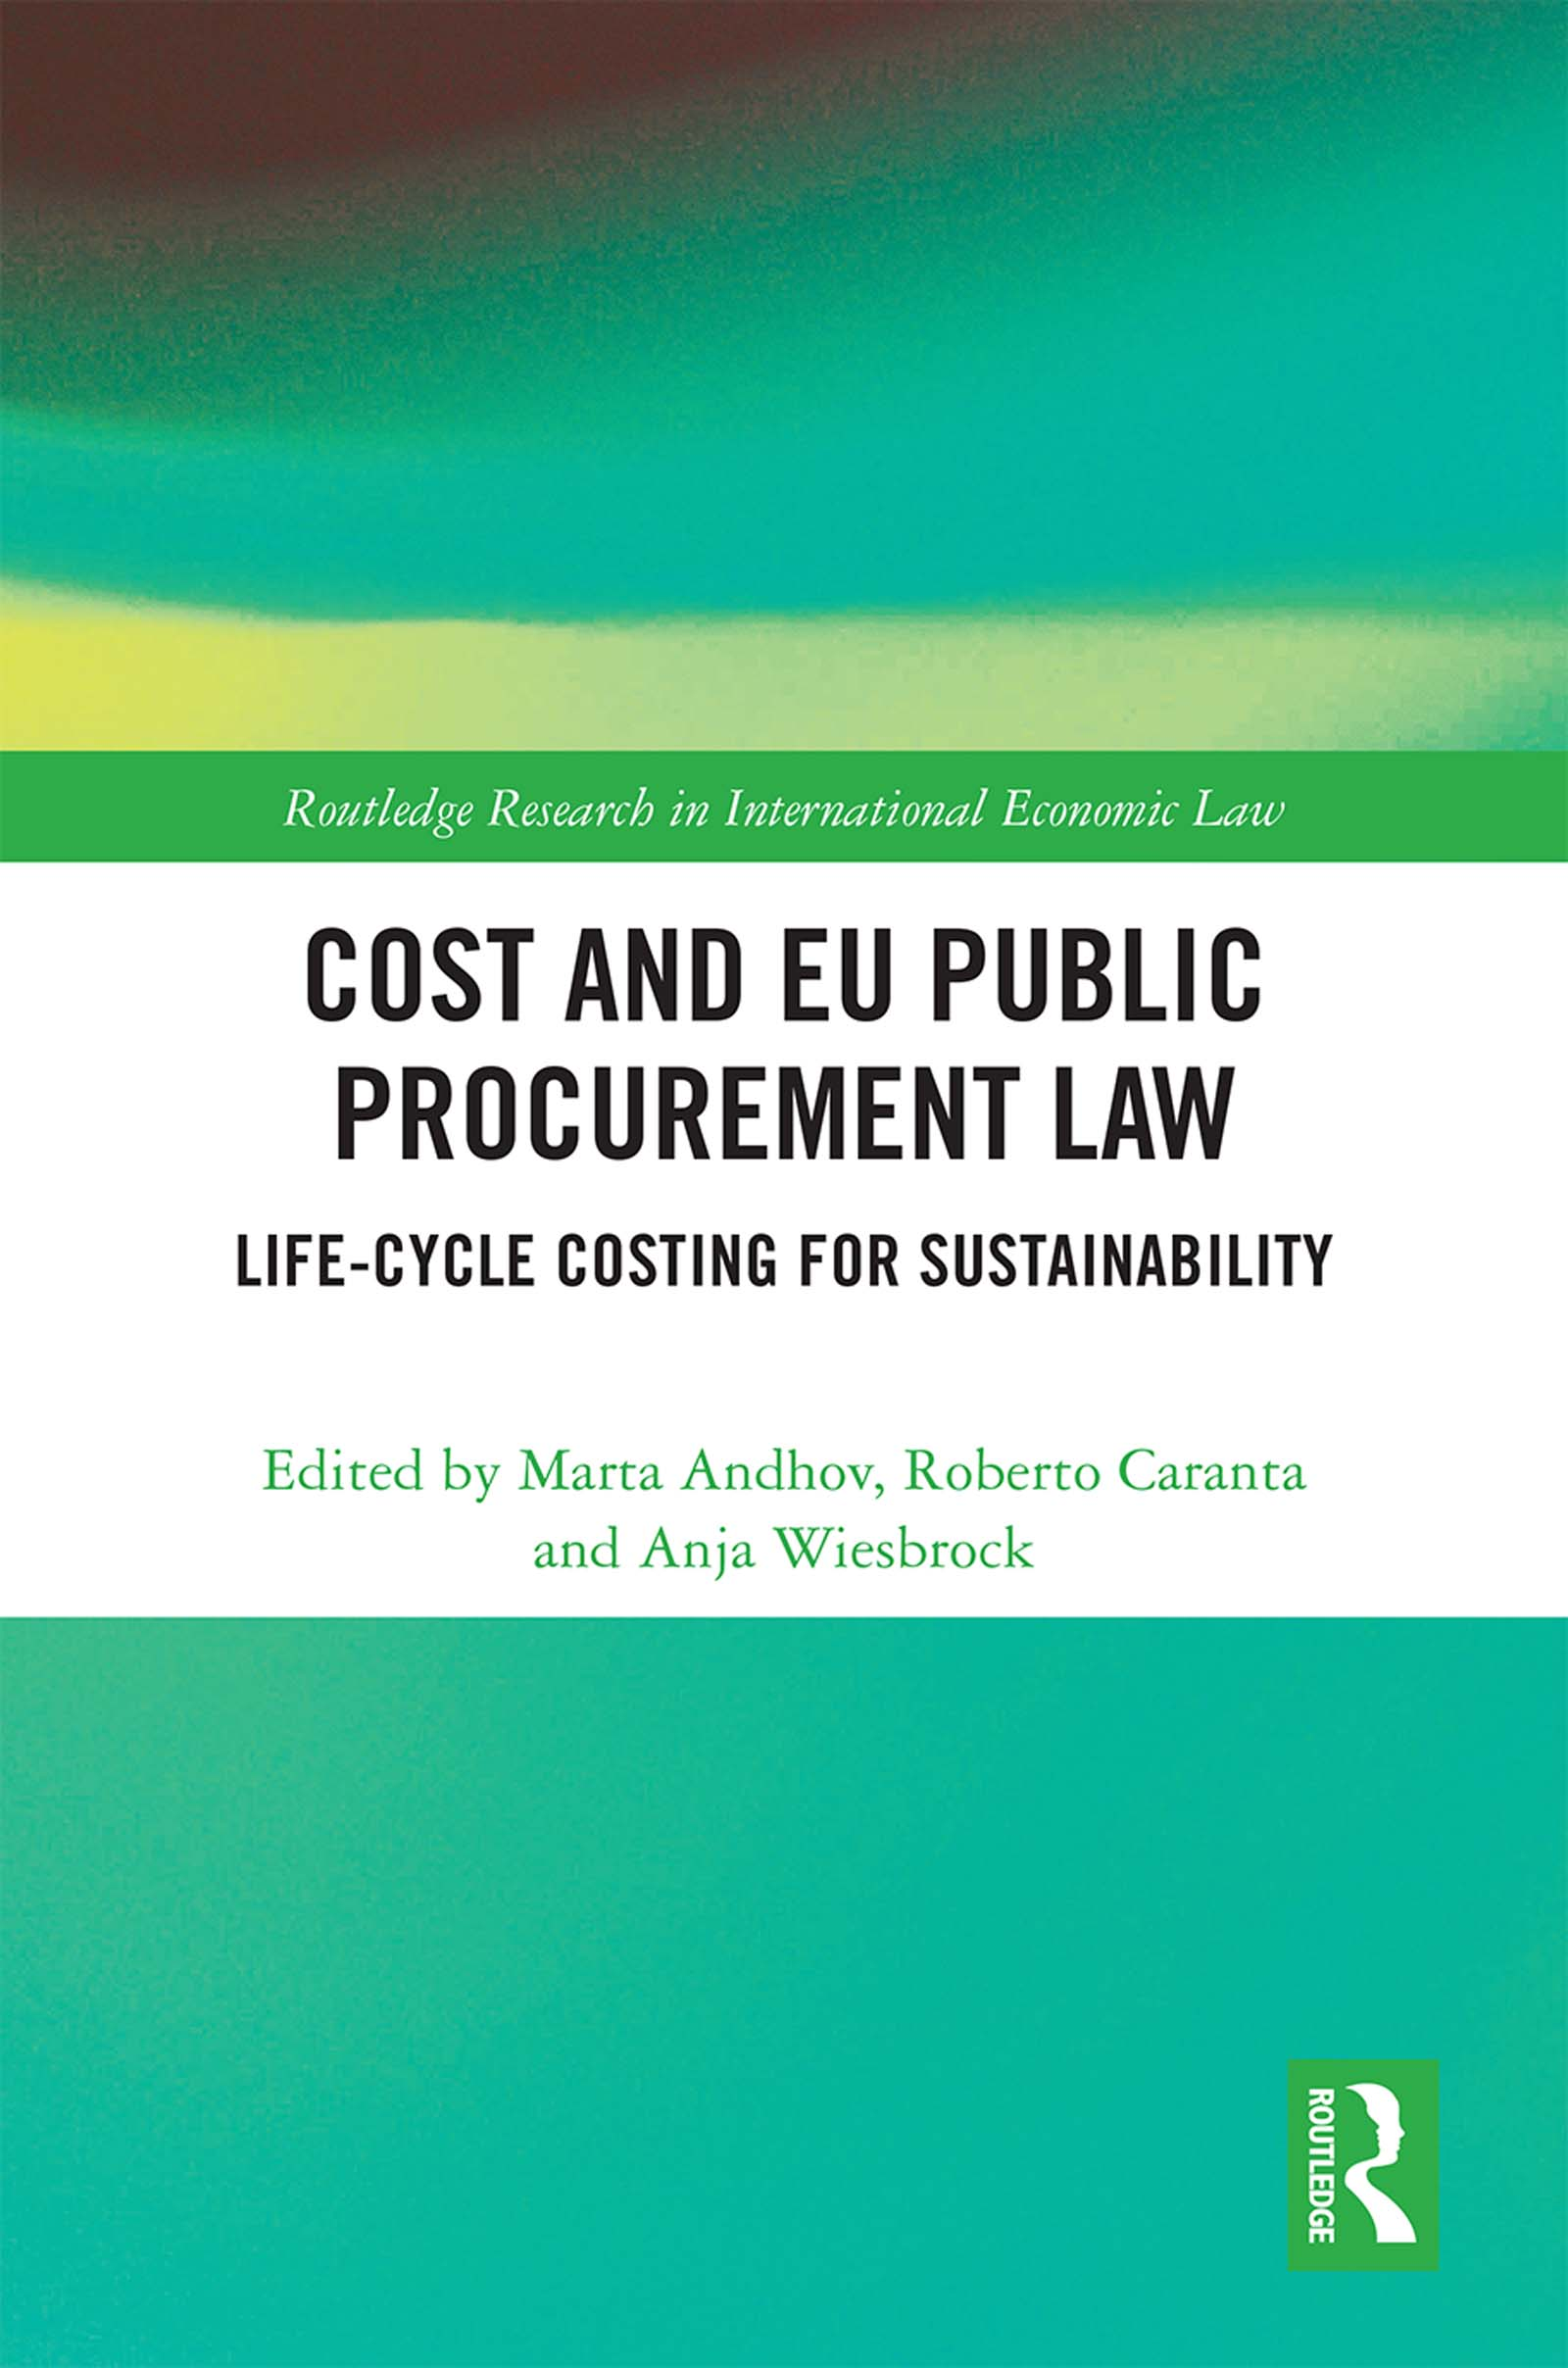 Cost and EU Public Procurement Law: Life-Cycle Costing for Sustainability book cover